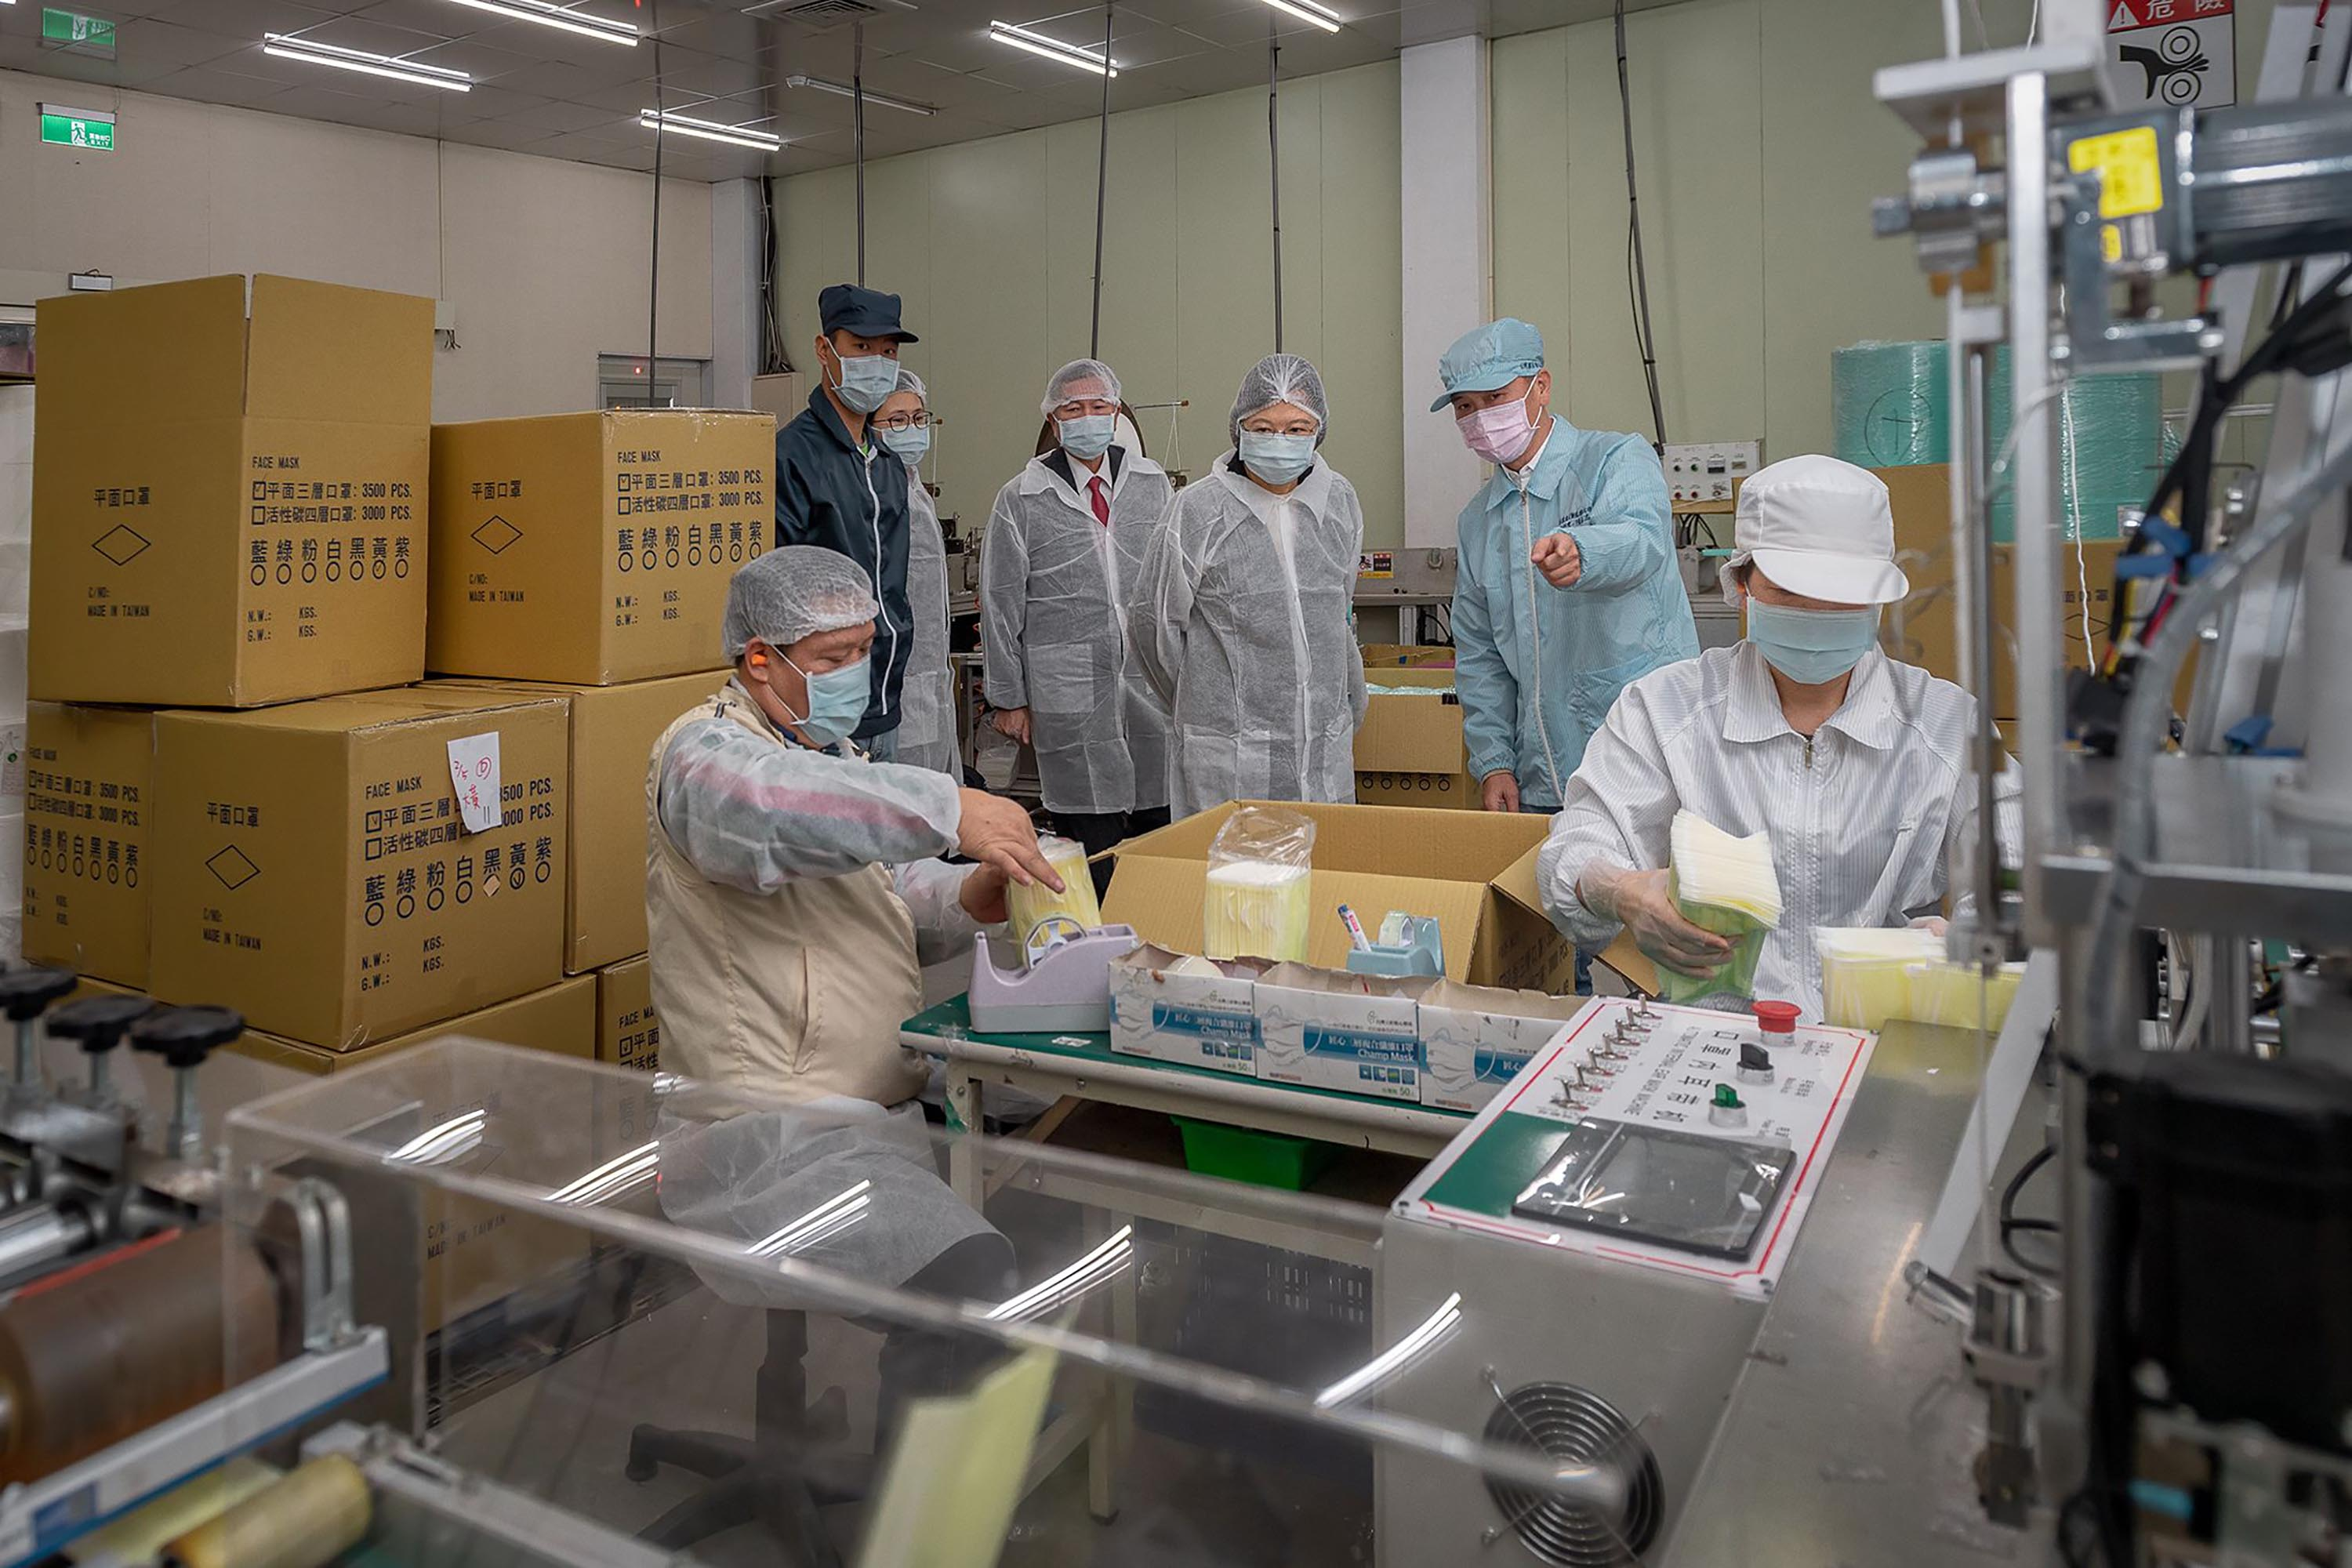 A handout photo made available by the Taiwan Presidential Office shows Taiwan's President Tsai Ing-wen, center, during an inspection at a face masks factory in New Taipei, Taiwan on February 5.